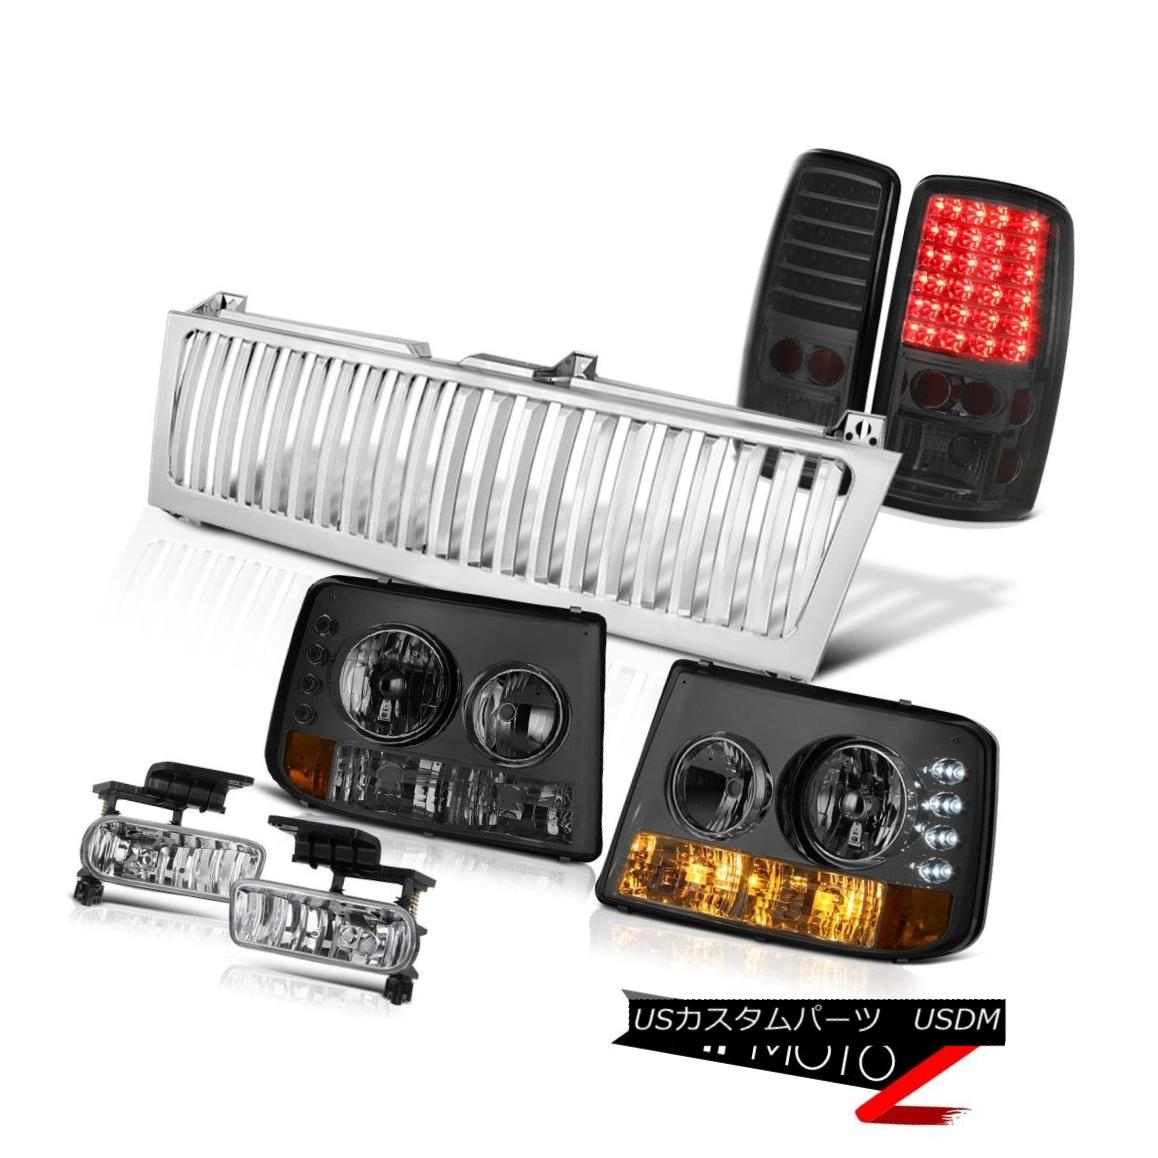 テールライト 00 01 02 03 04 05 06 Suburban 5.3L Smoke Headlights BrakeLight Chrome Fog Grille 00 01 02 03 04 05 06郊外5.3LスモークヘッドライトBrakeLight Chrome Fog Grille